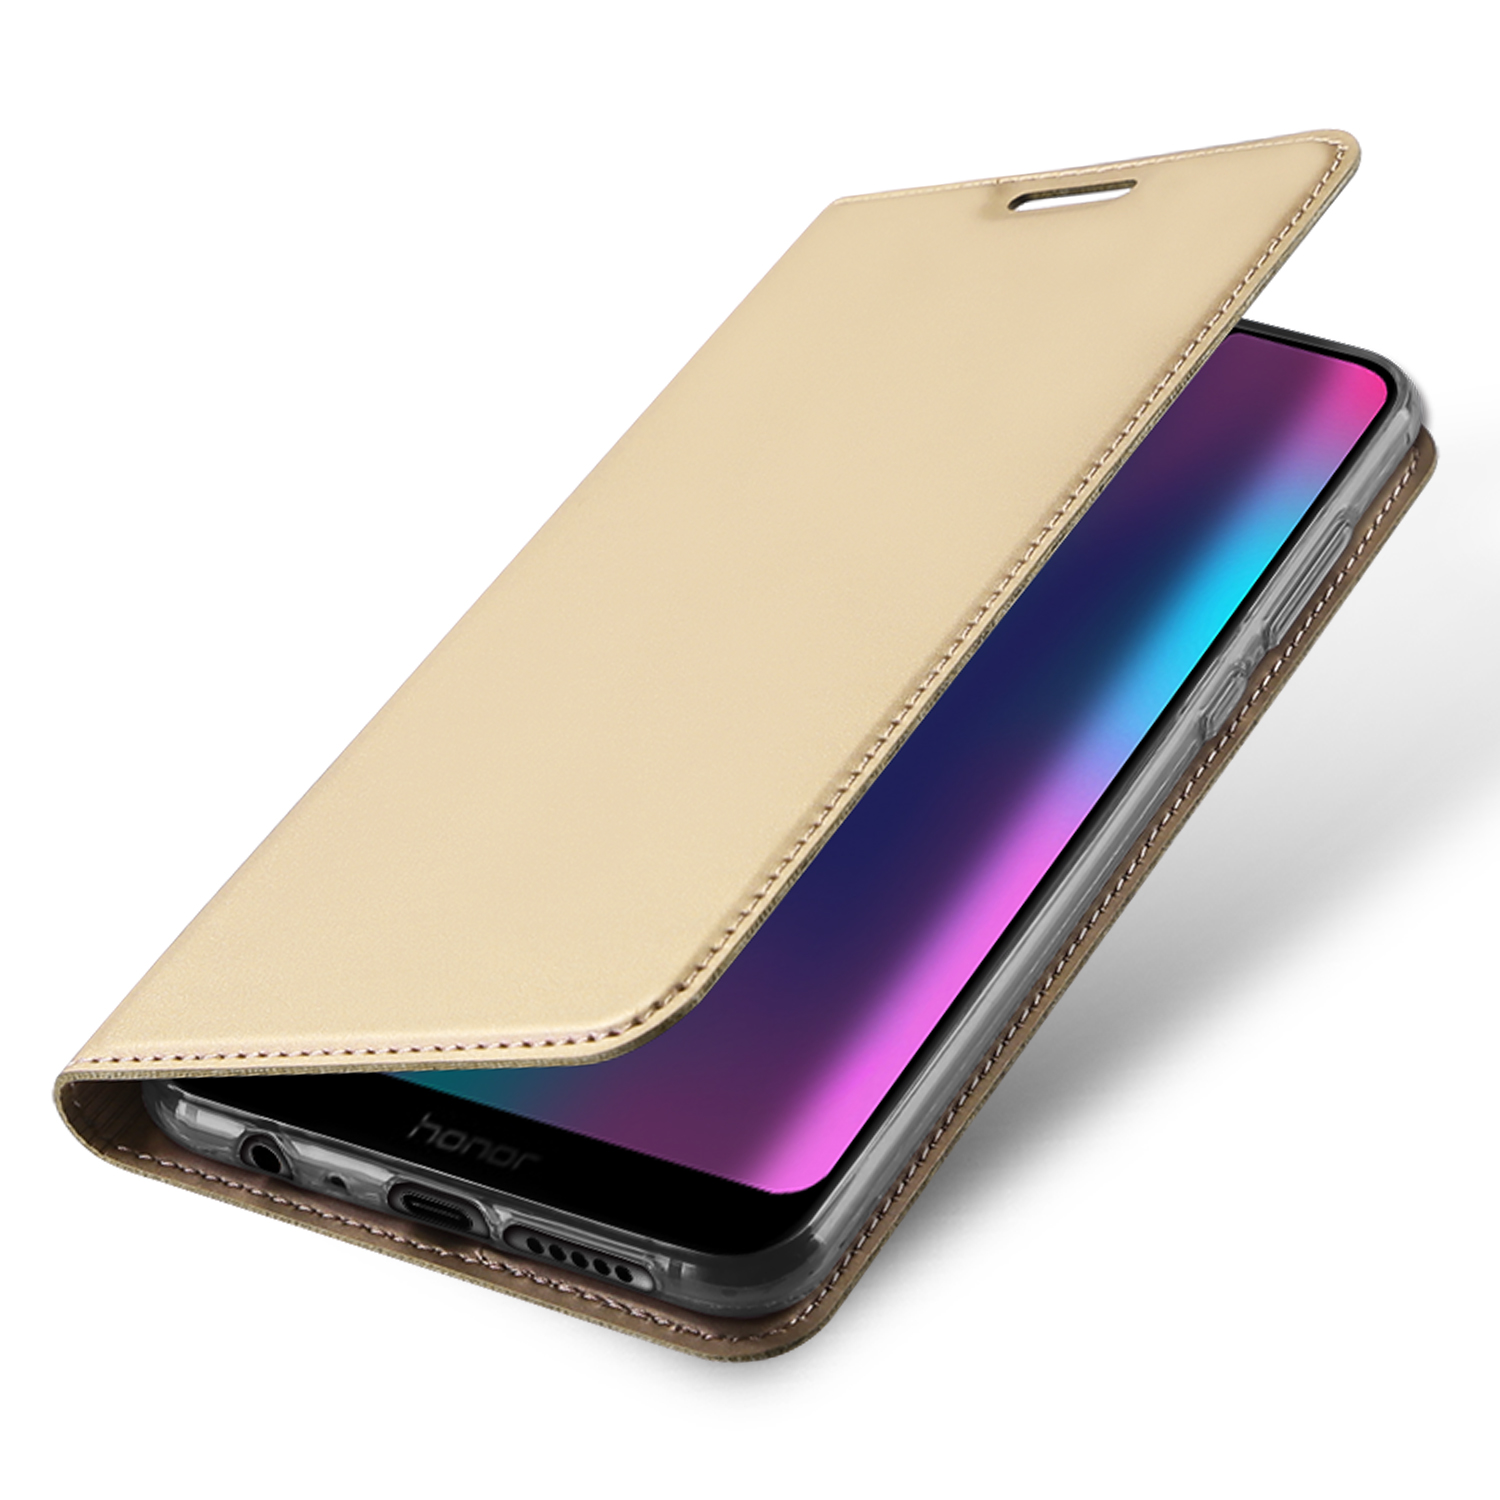 Flip Case For Huawei Honor 9N 9i PU Leather TPU Soft Bumper Protective Card Slot Holder Wallet Stand Cover Mobile Phone Bag in Flip Cases from Cellphones Telecommunications